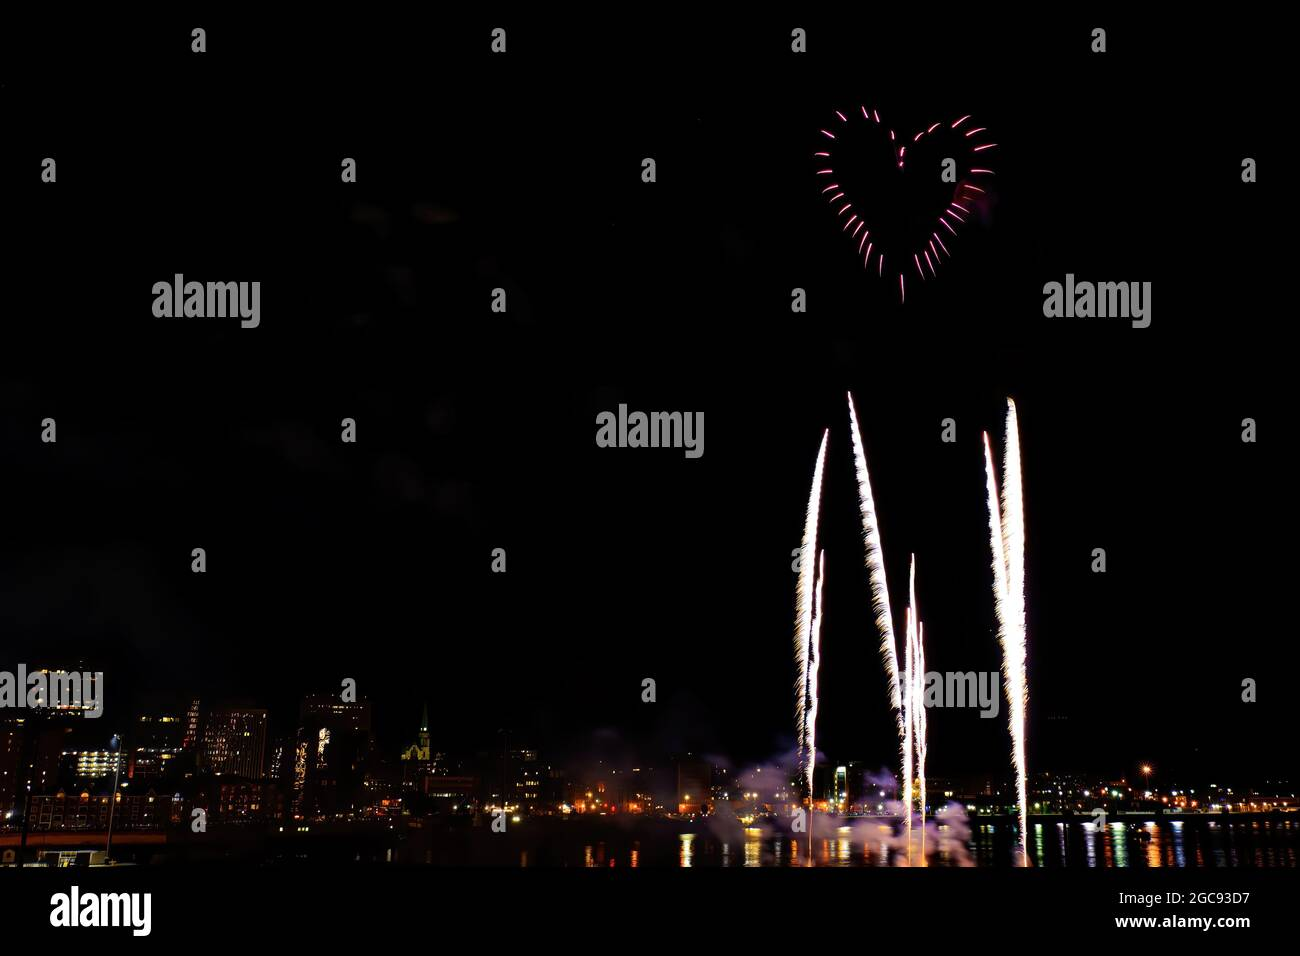 Heart shaped fireworks sideways over a city skyline at night. Other fireworks rise towards the heart. Stock Photo